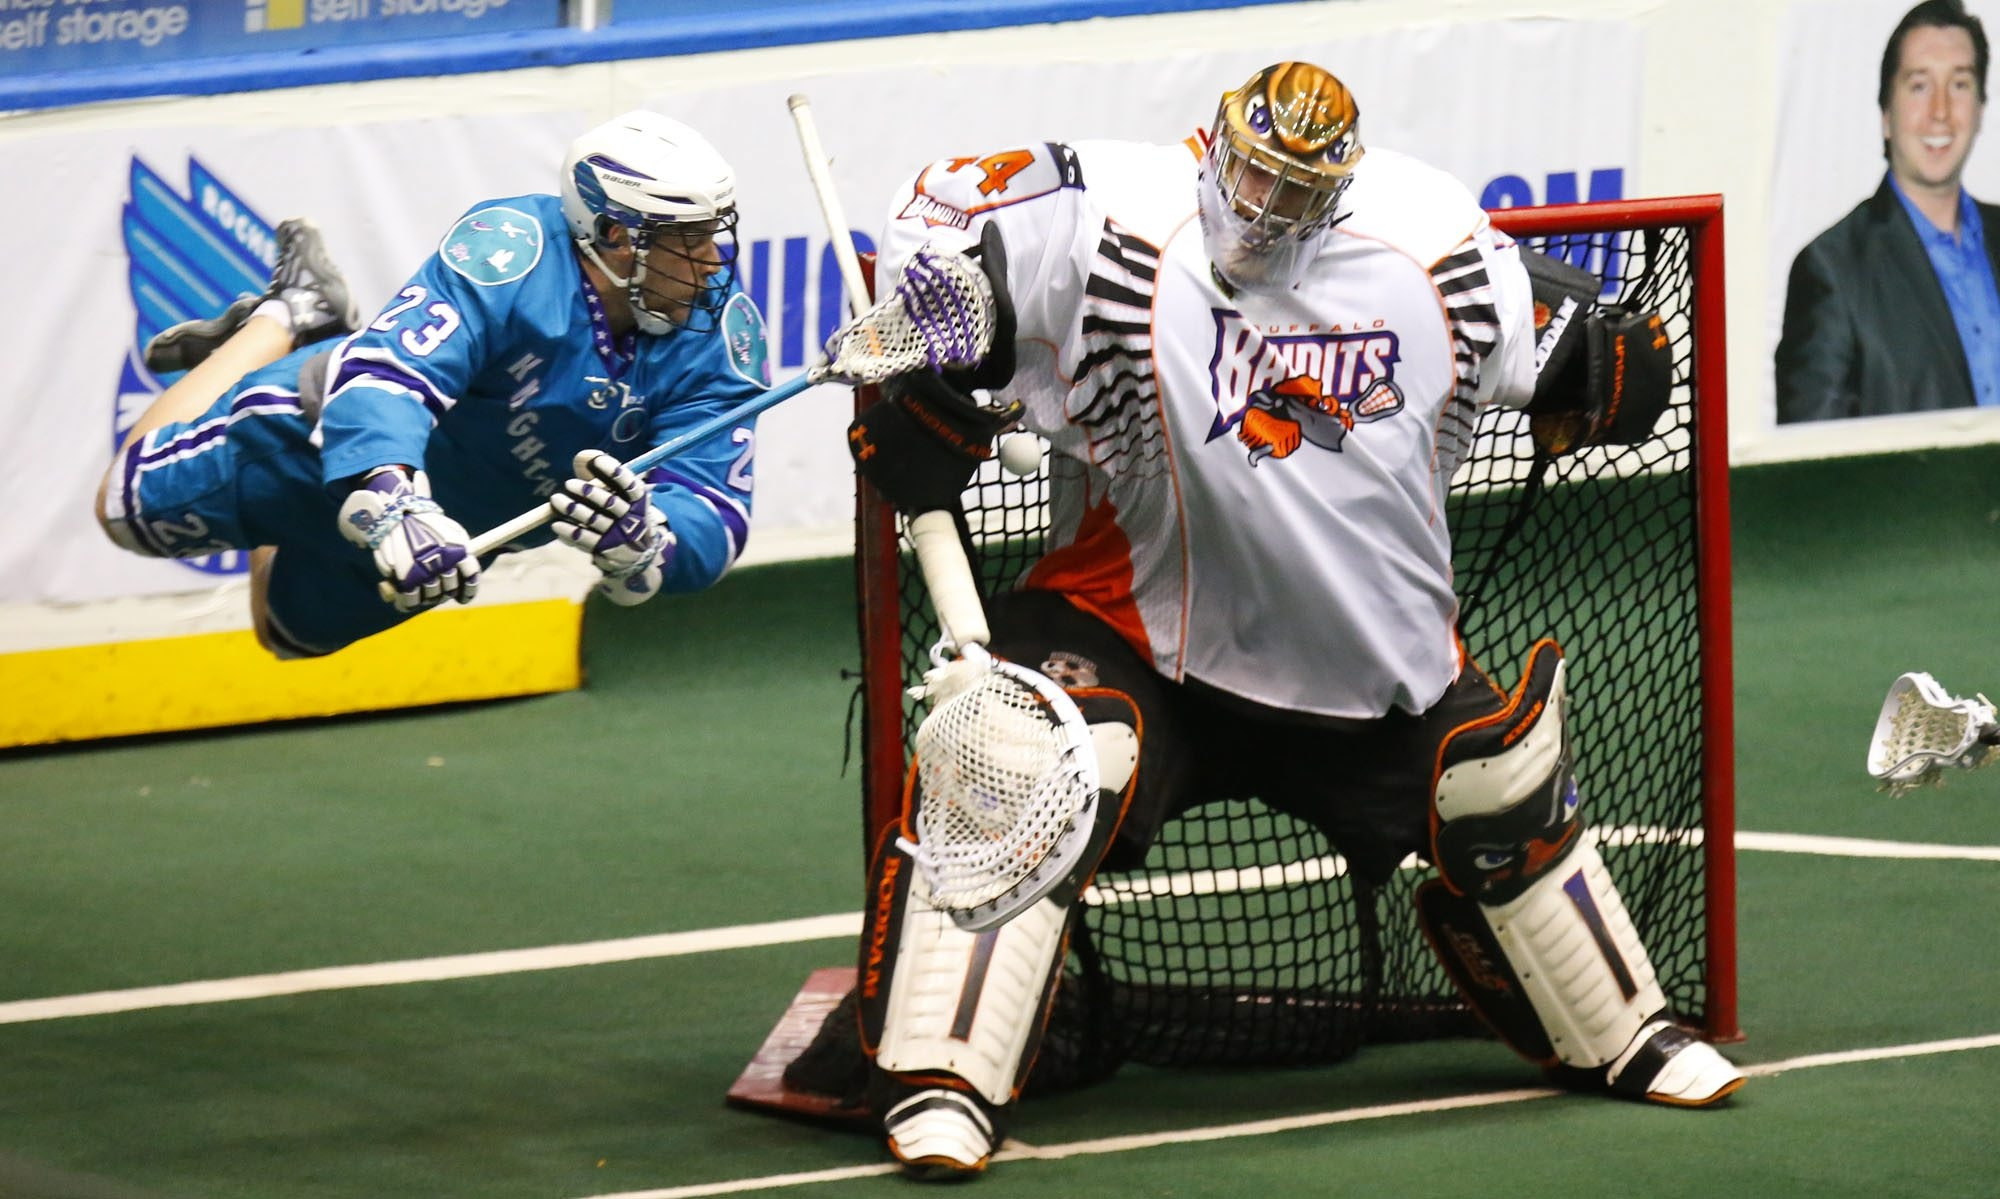 This could have been the final game for Bandits goalie Anthony Cosmo. (Buffalo News file photo)